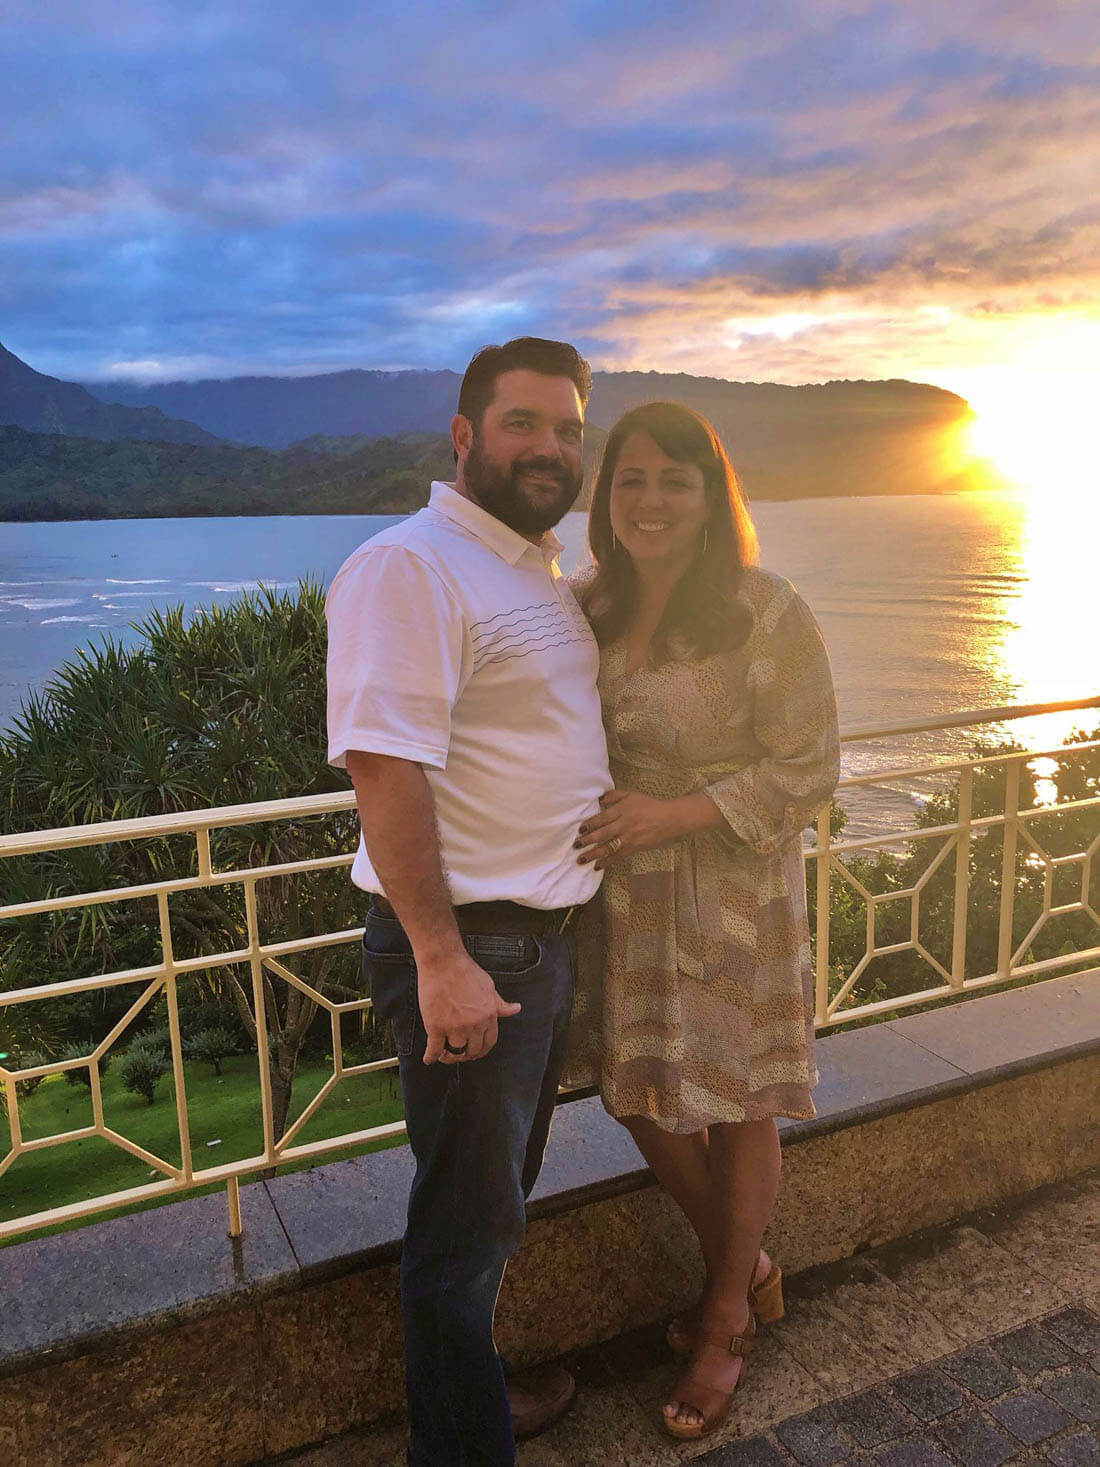 Top Things to Do in Kauai - sunset at Kauai Grill